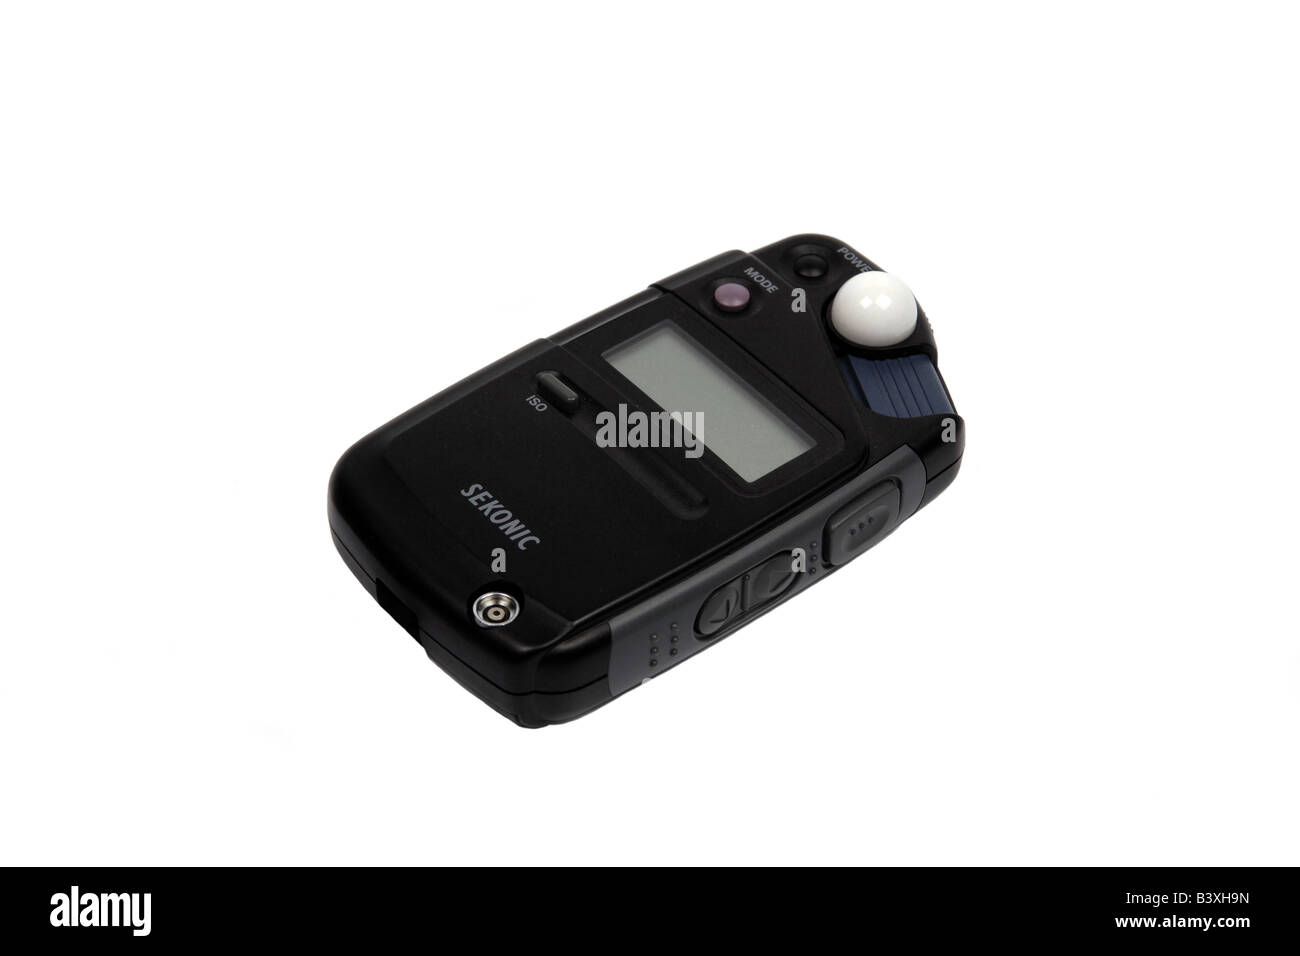 Sekonic L308 Photographic Digital Light Meter - Stock Image